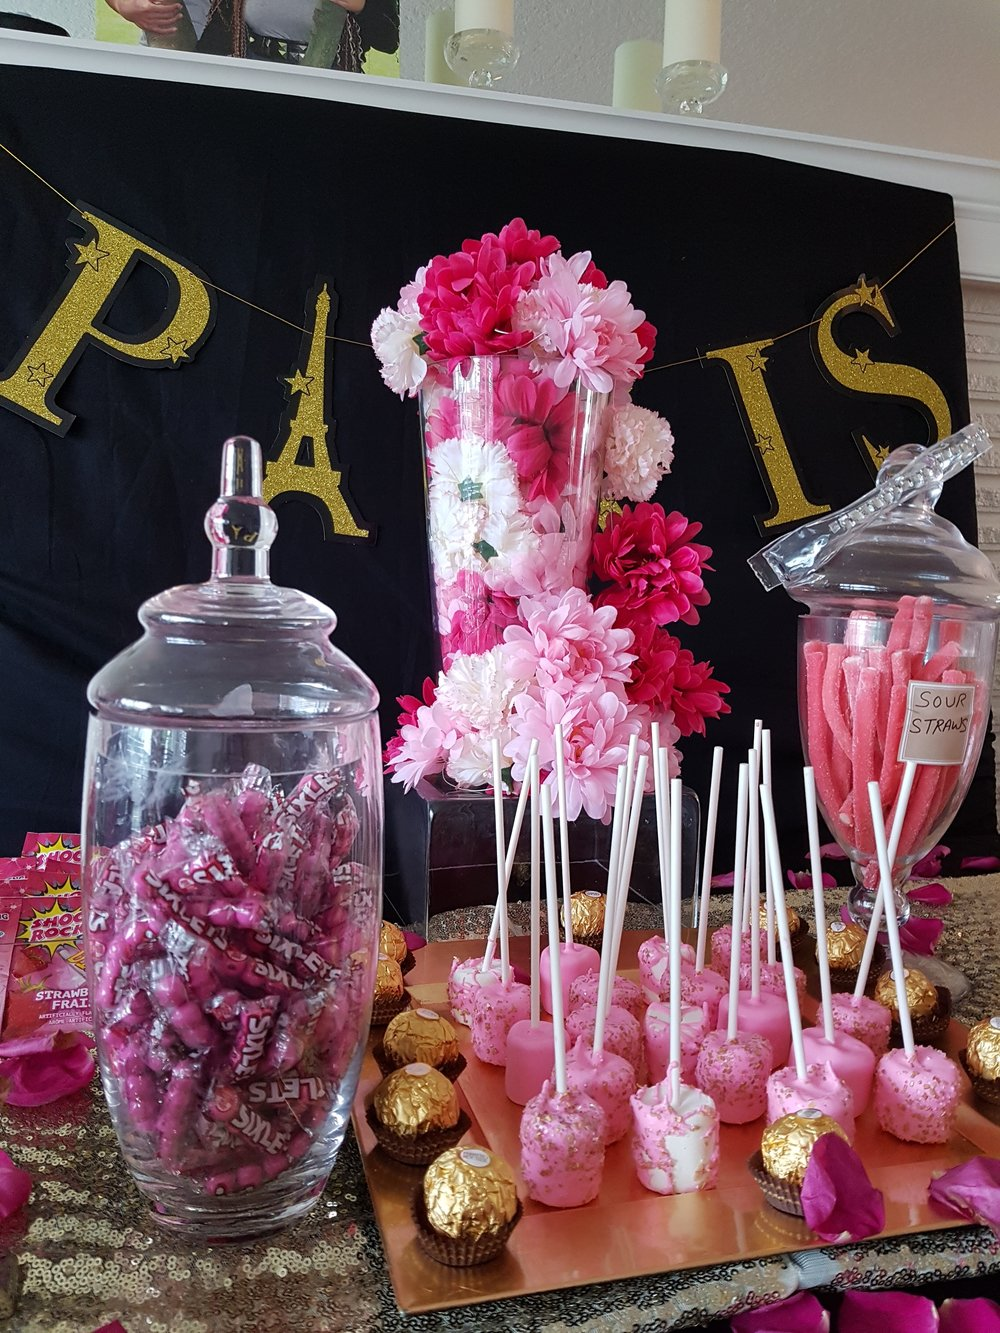 Paris_Candy_Buffet_2.jpg